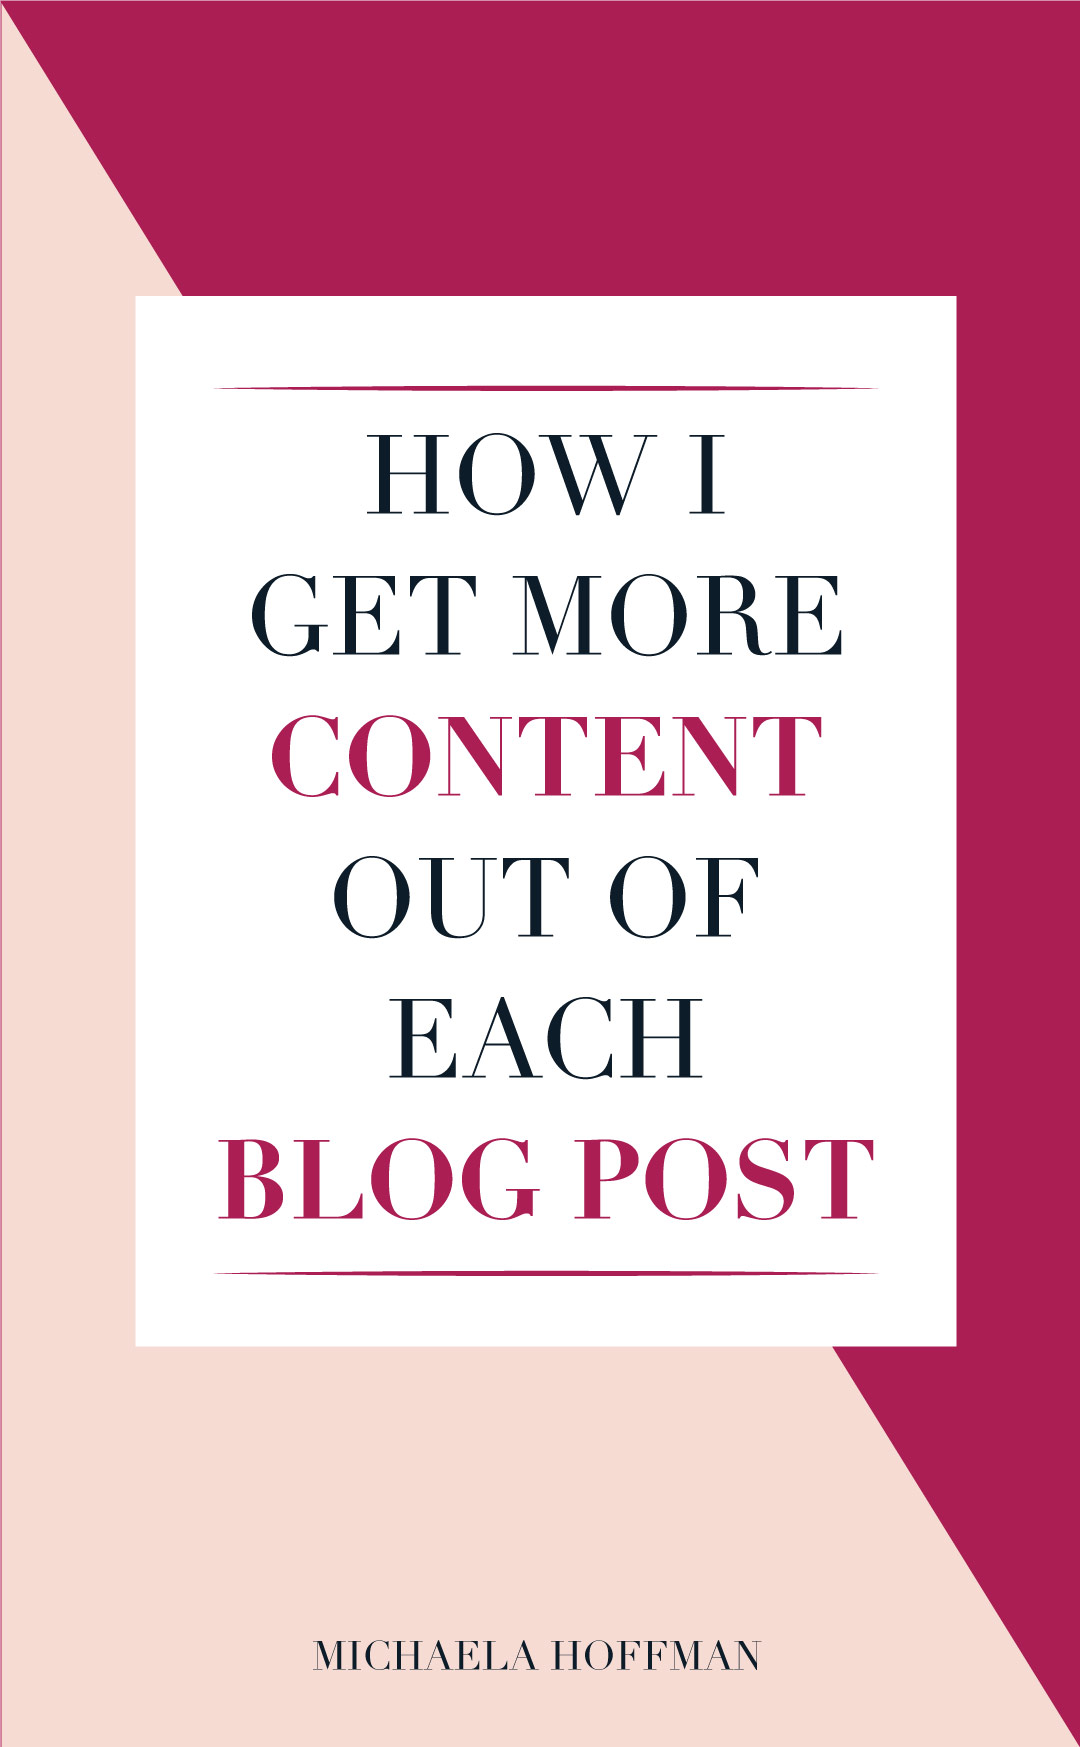 Do you hate creating content for your online business? Here is how I get more life out of my old blog posts without having to create new content and stress out about yet another thing I need to do to grow my online business